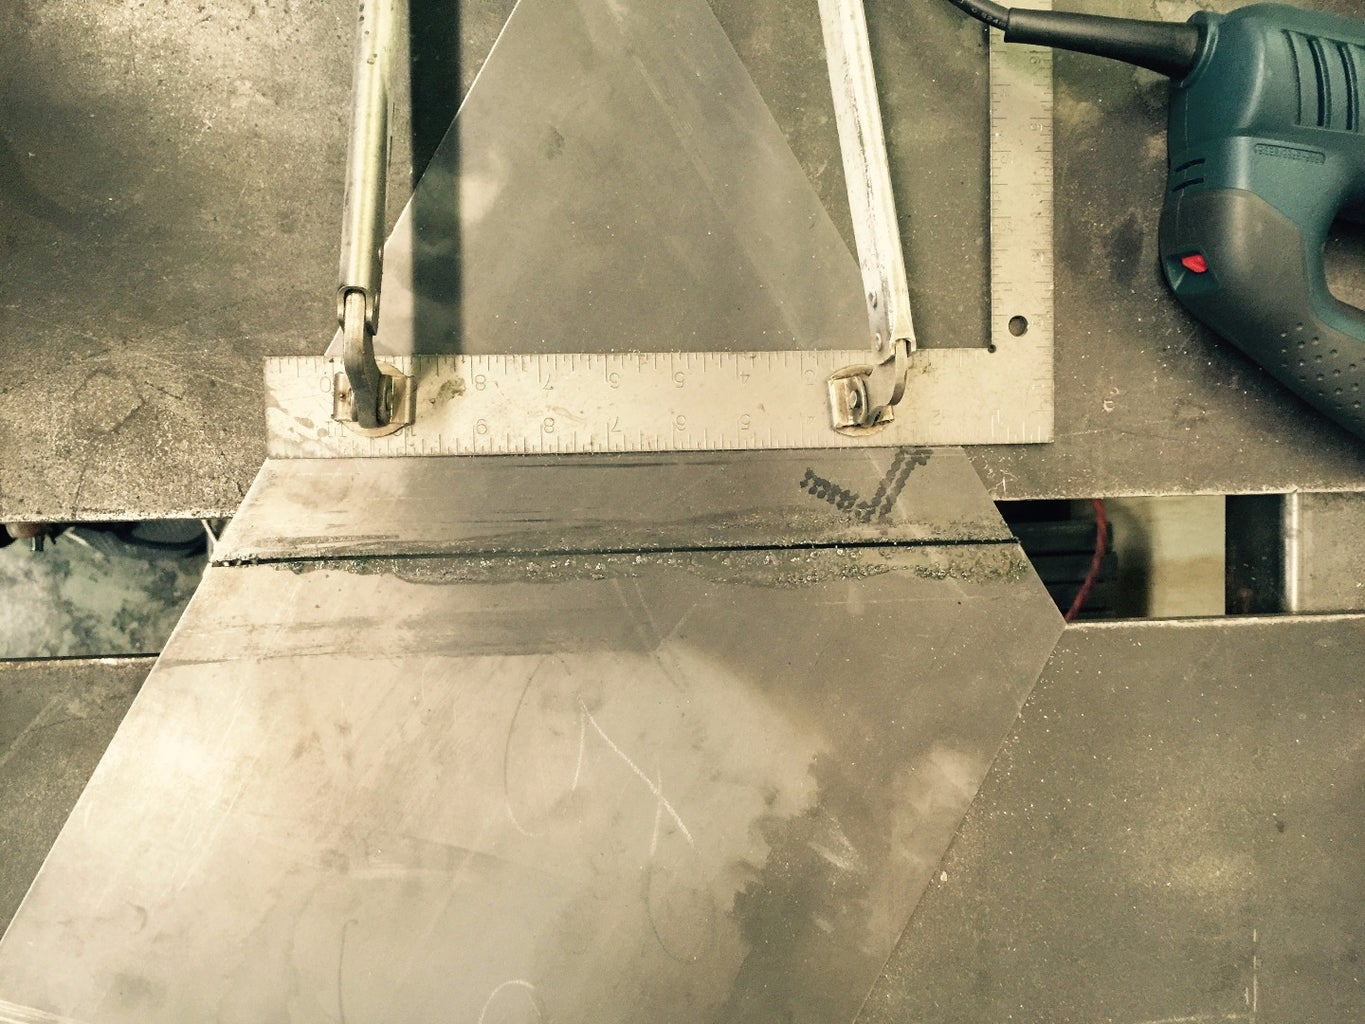 Part 3: Building the Stand (Preparing the Lower & Upper Steel Plates)